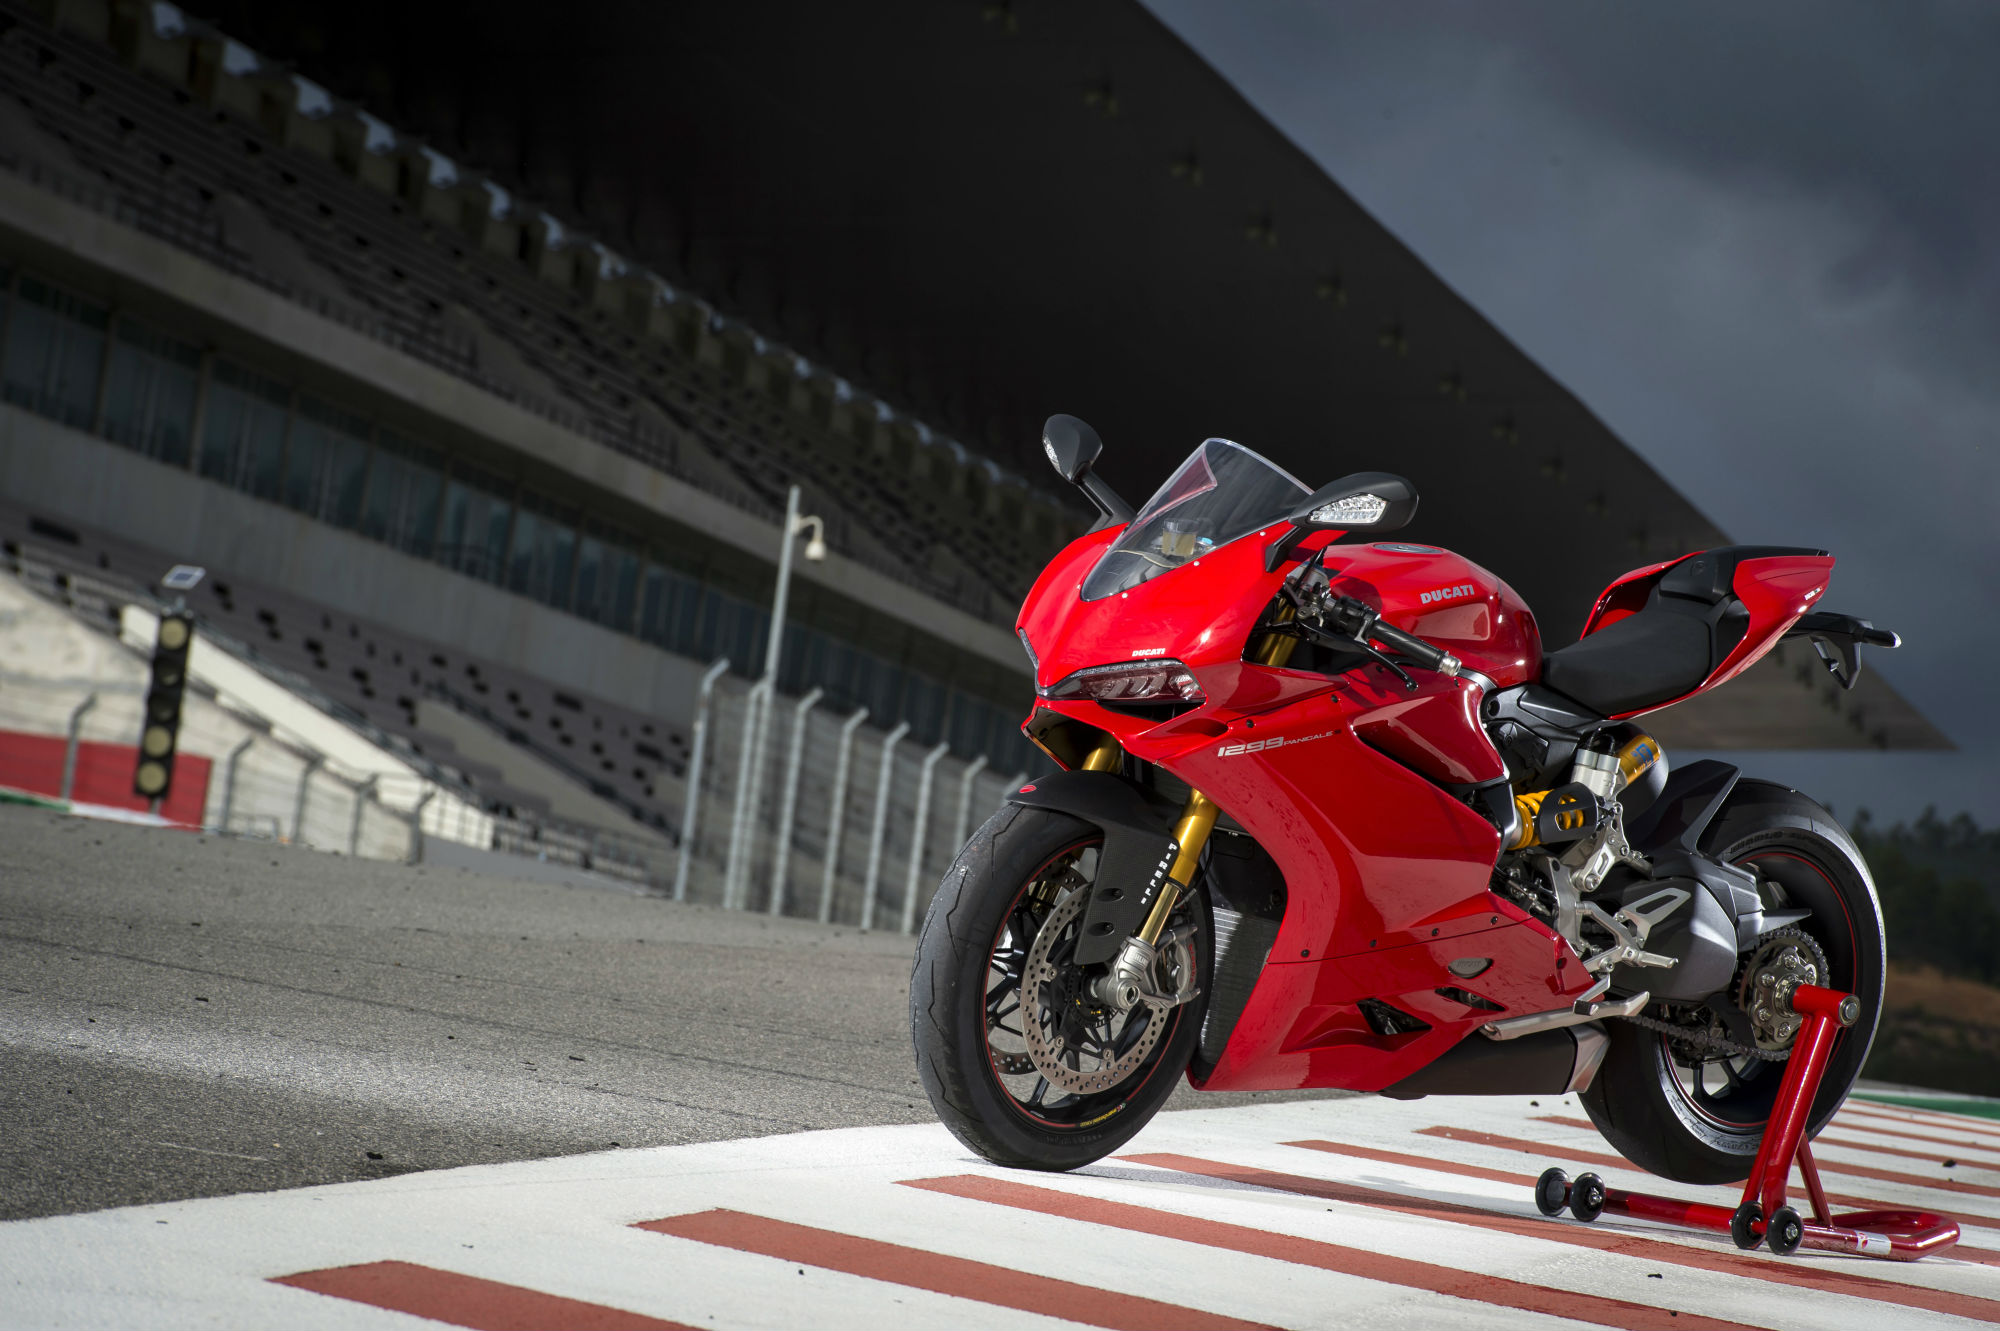 Ducati 959 Panigale and Hypermotard 939 on the way